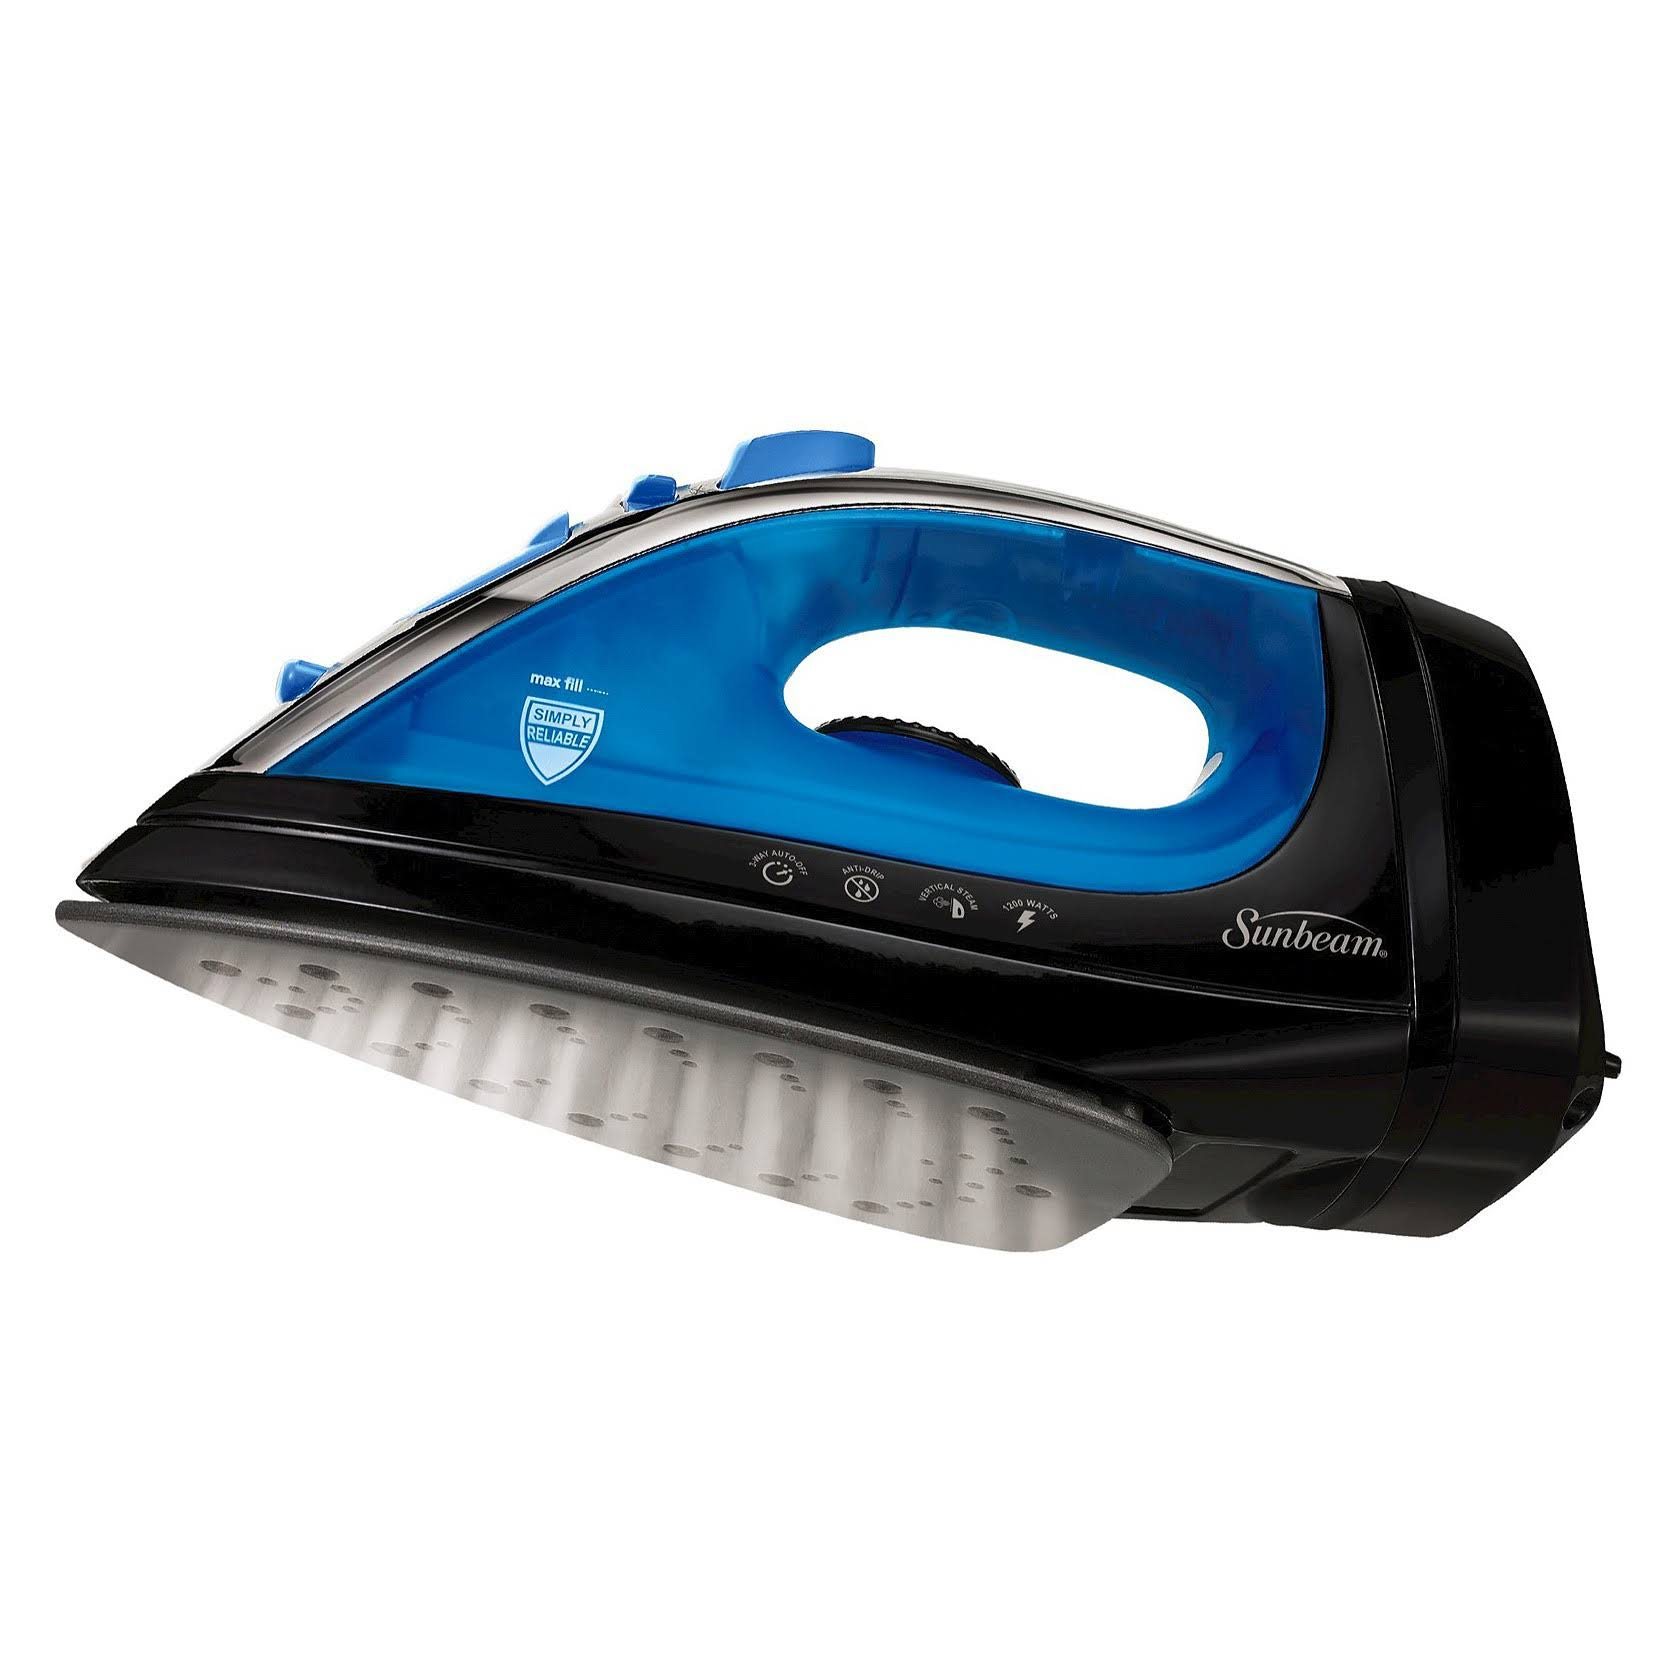 Sunbeam Steam Master Iron with Retractable Cord Black & Blue